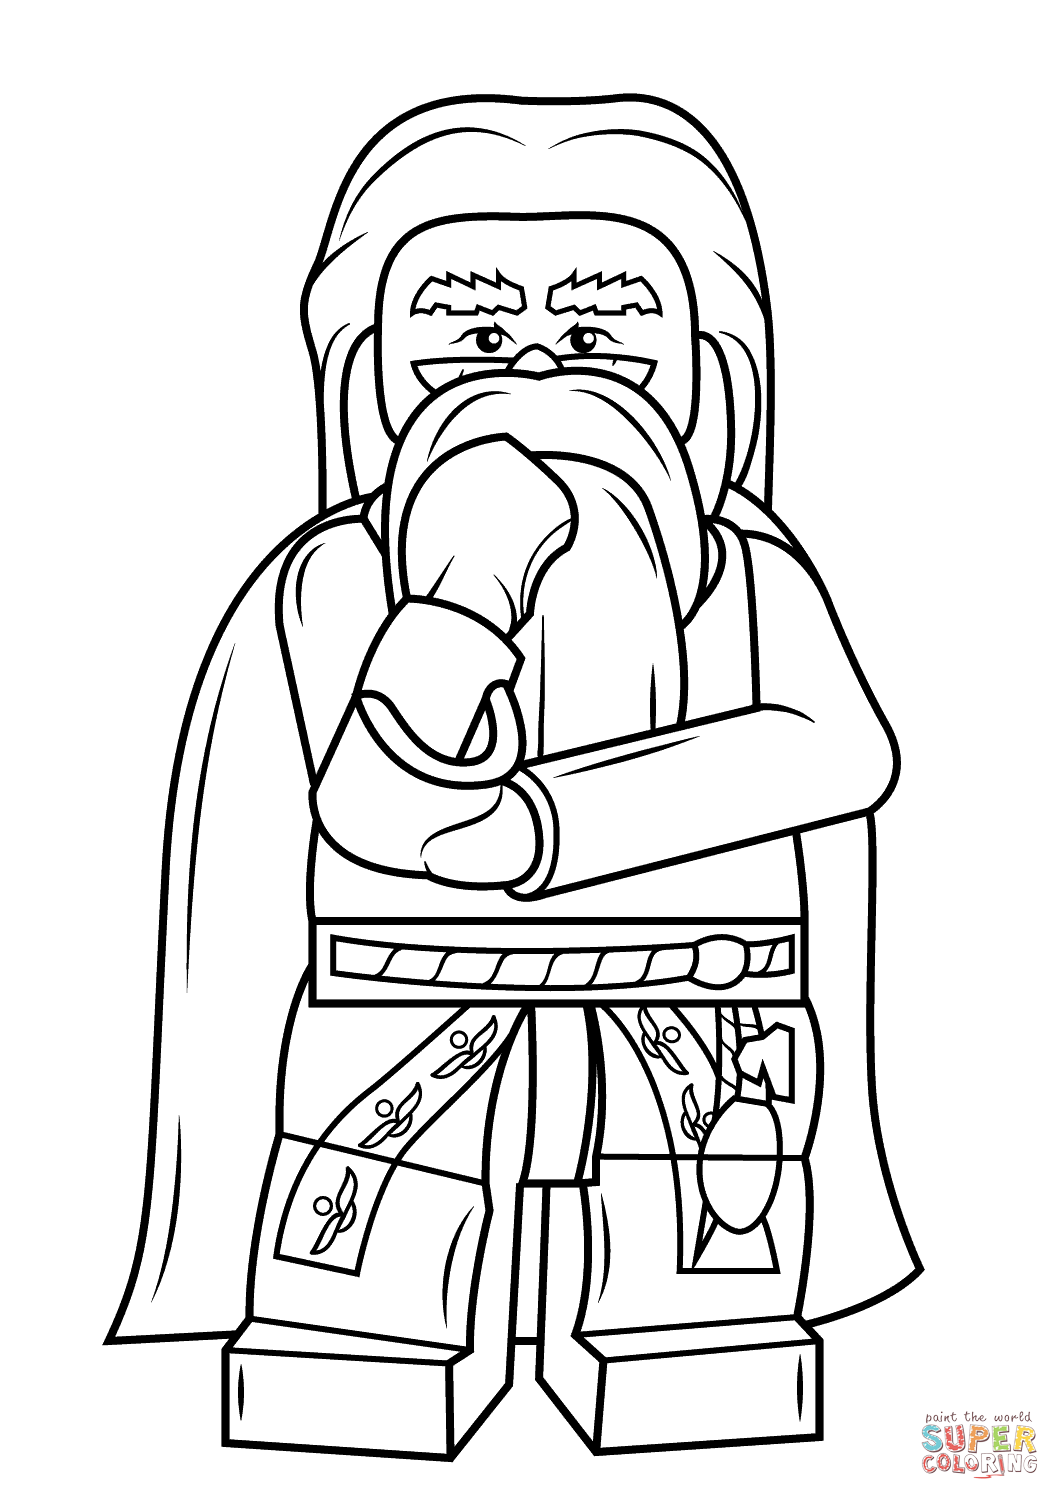 Lego Harry Potter Coloring Pages Coloring Home Lego Harry Potter Coloring Pages